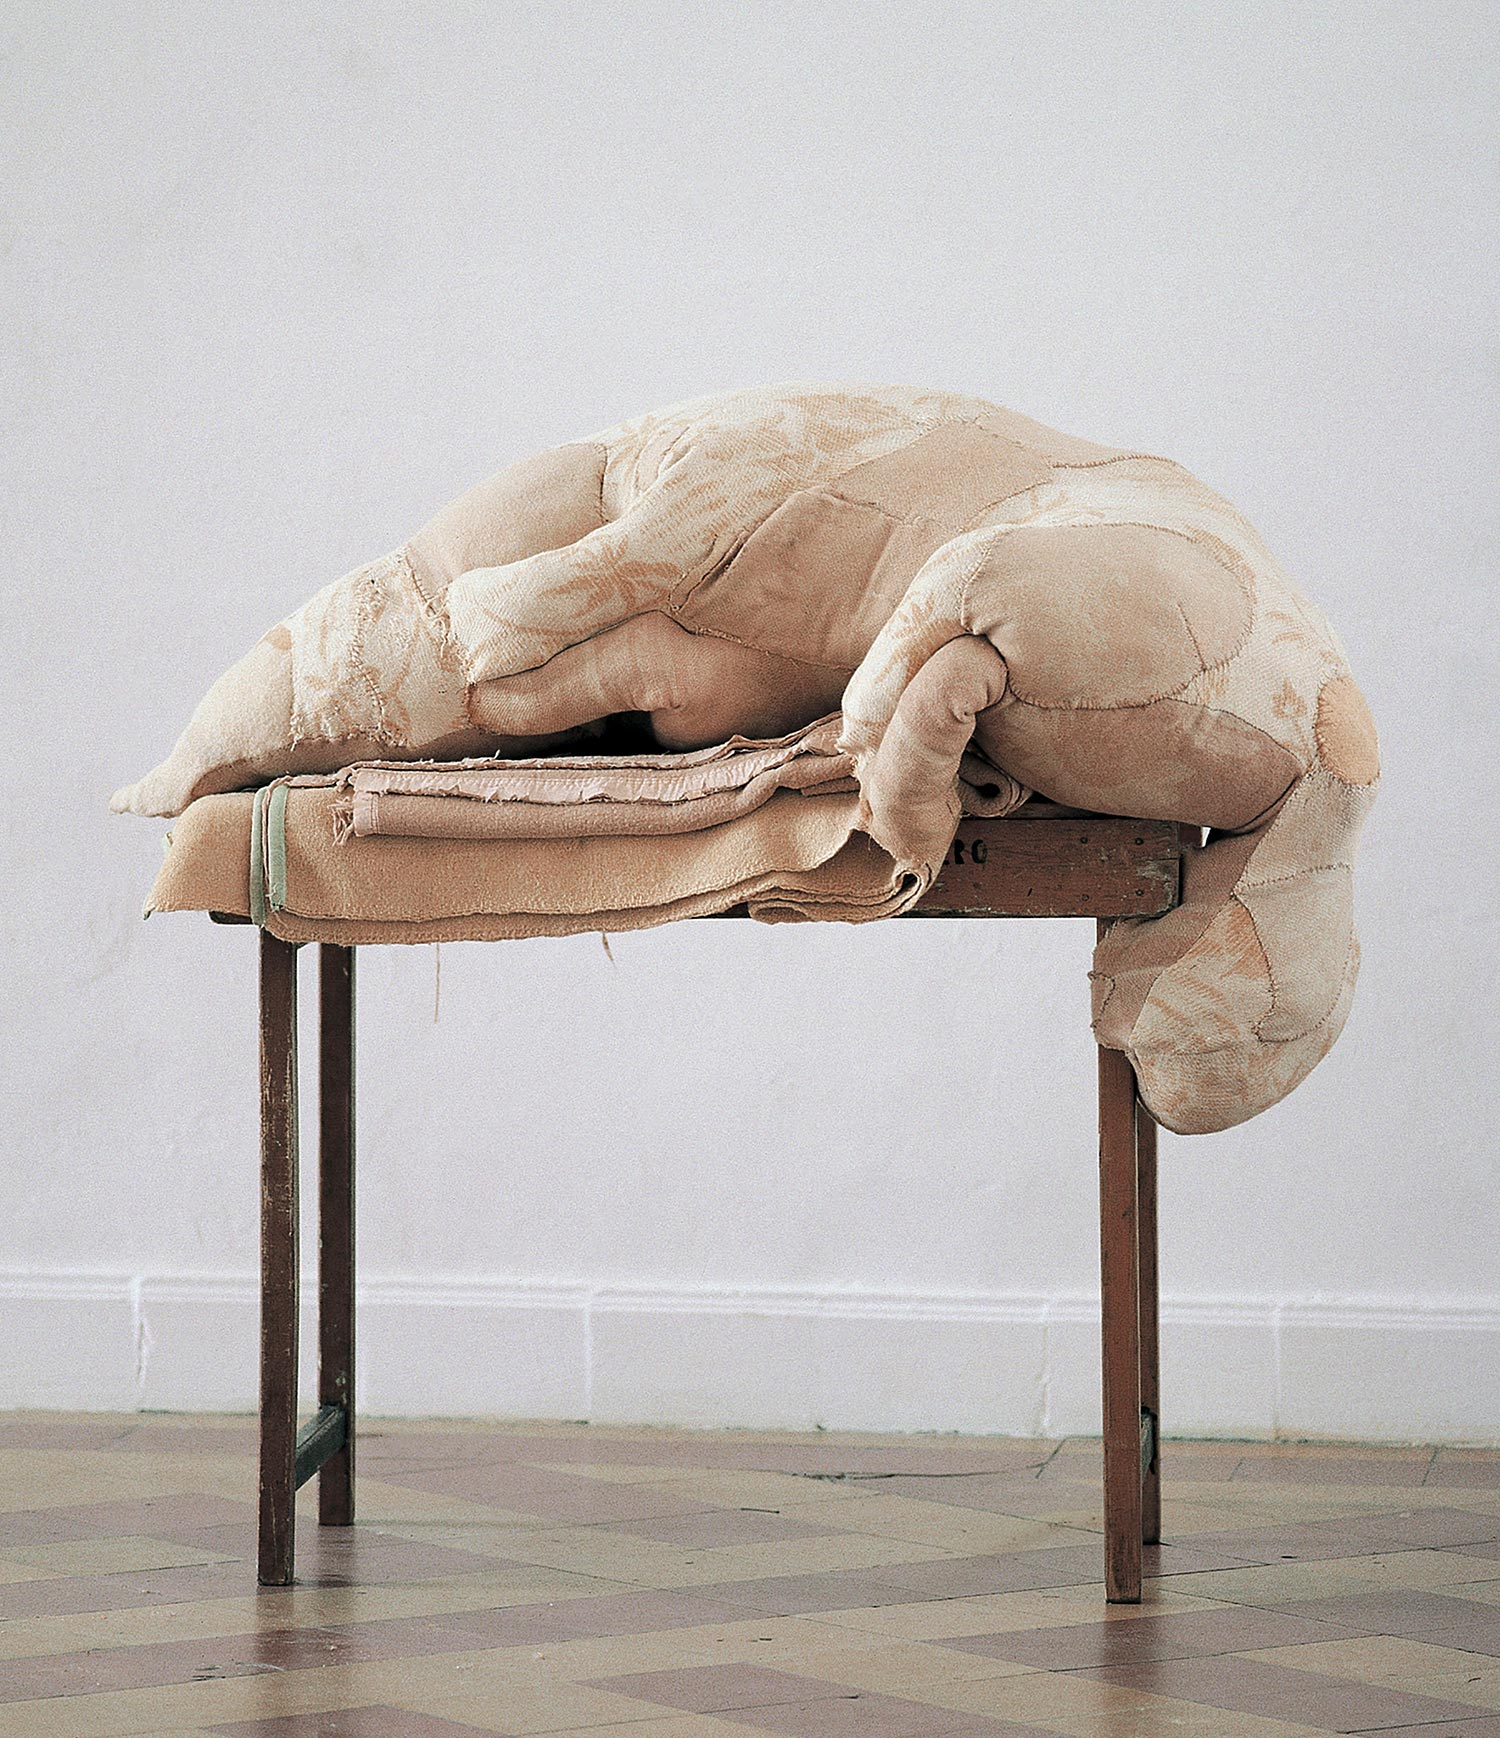 Berlinde de Bruyckere - dead sack sculpture